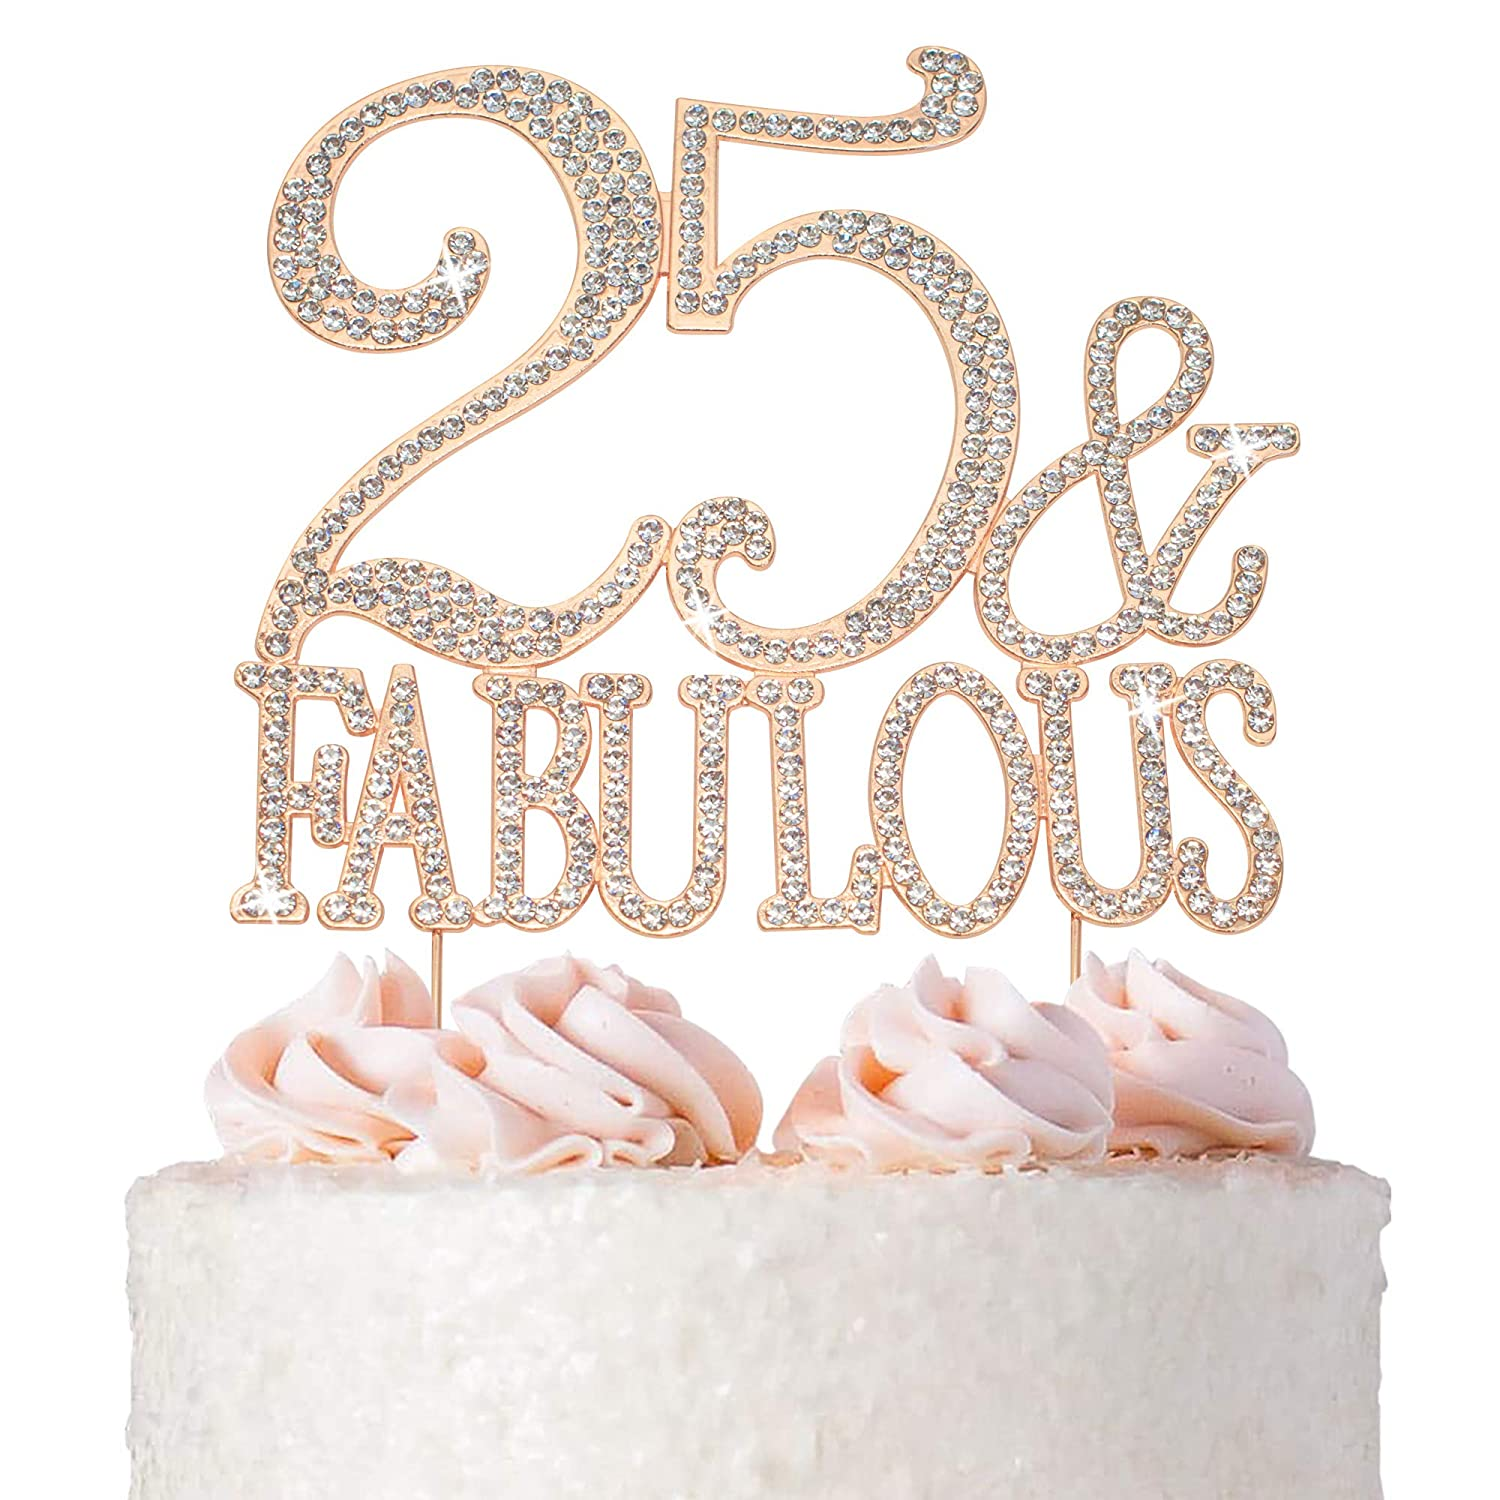 25 Cake Topper - Premium Rose Fabulous Metal and Gold Special price 25t Bombing new work